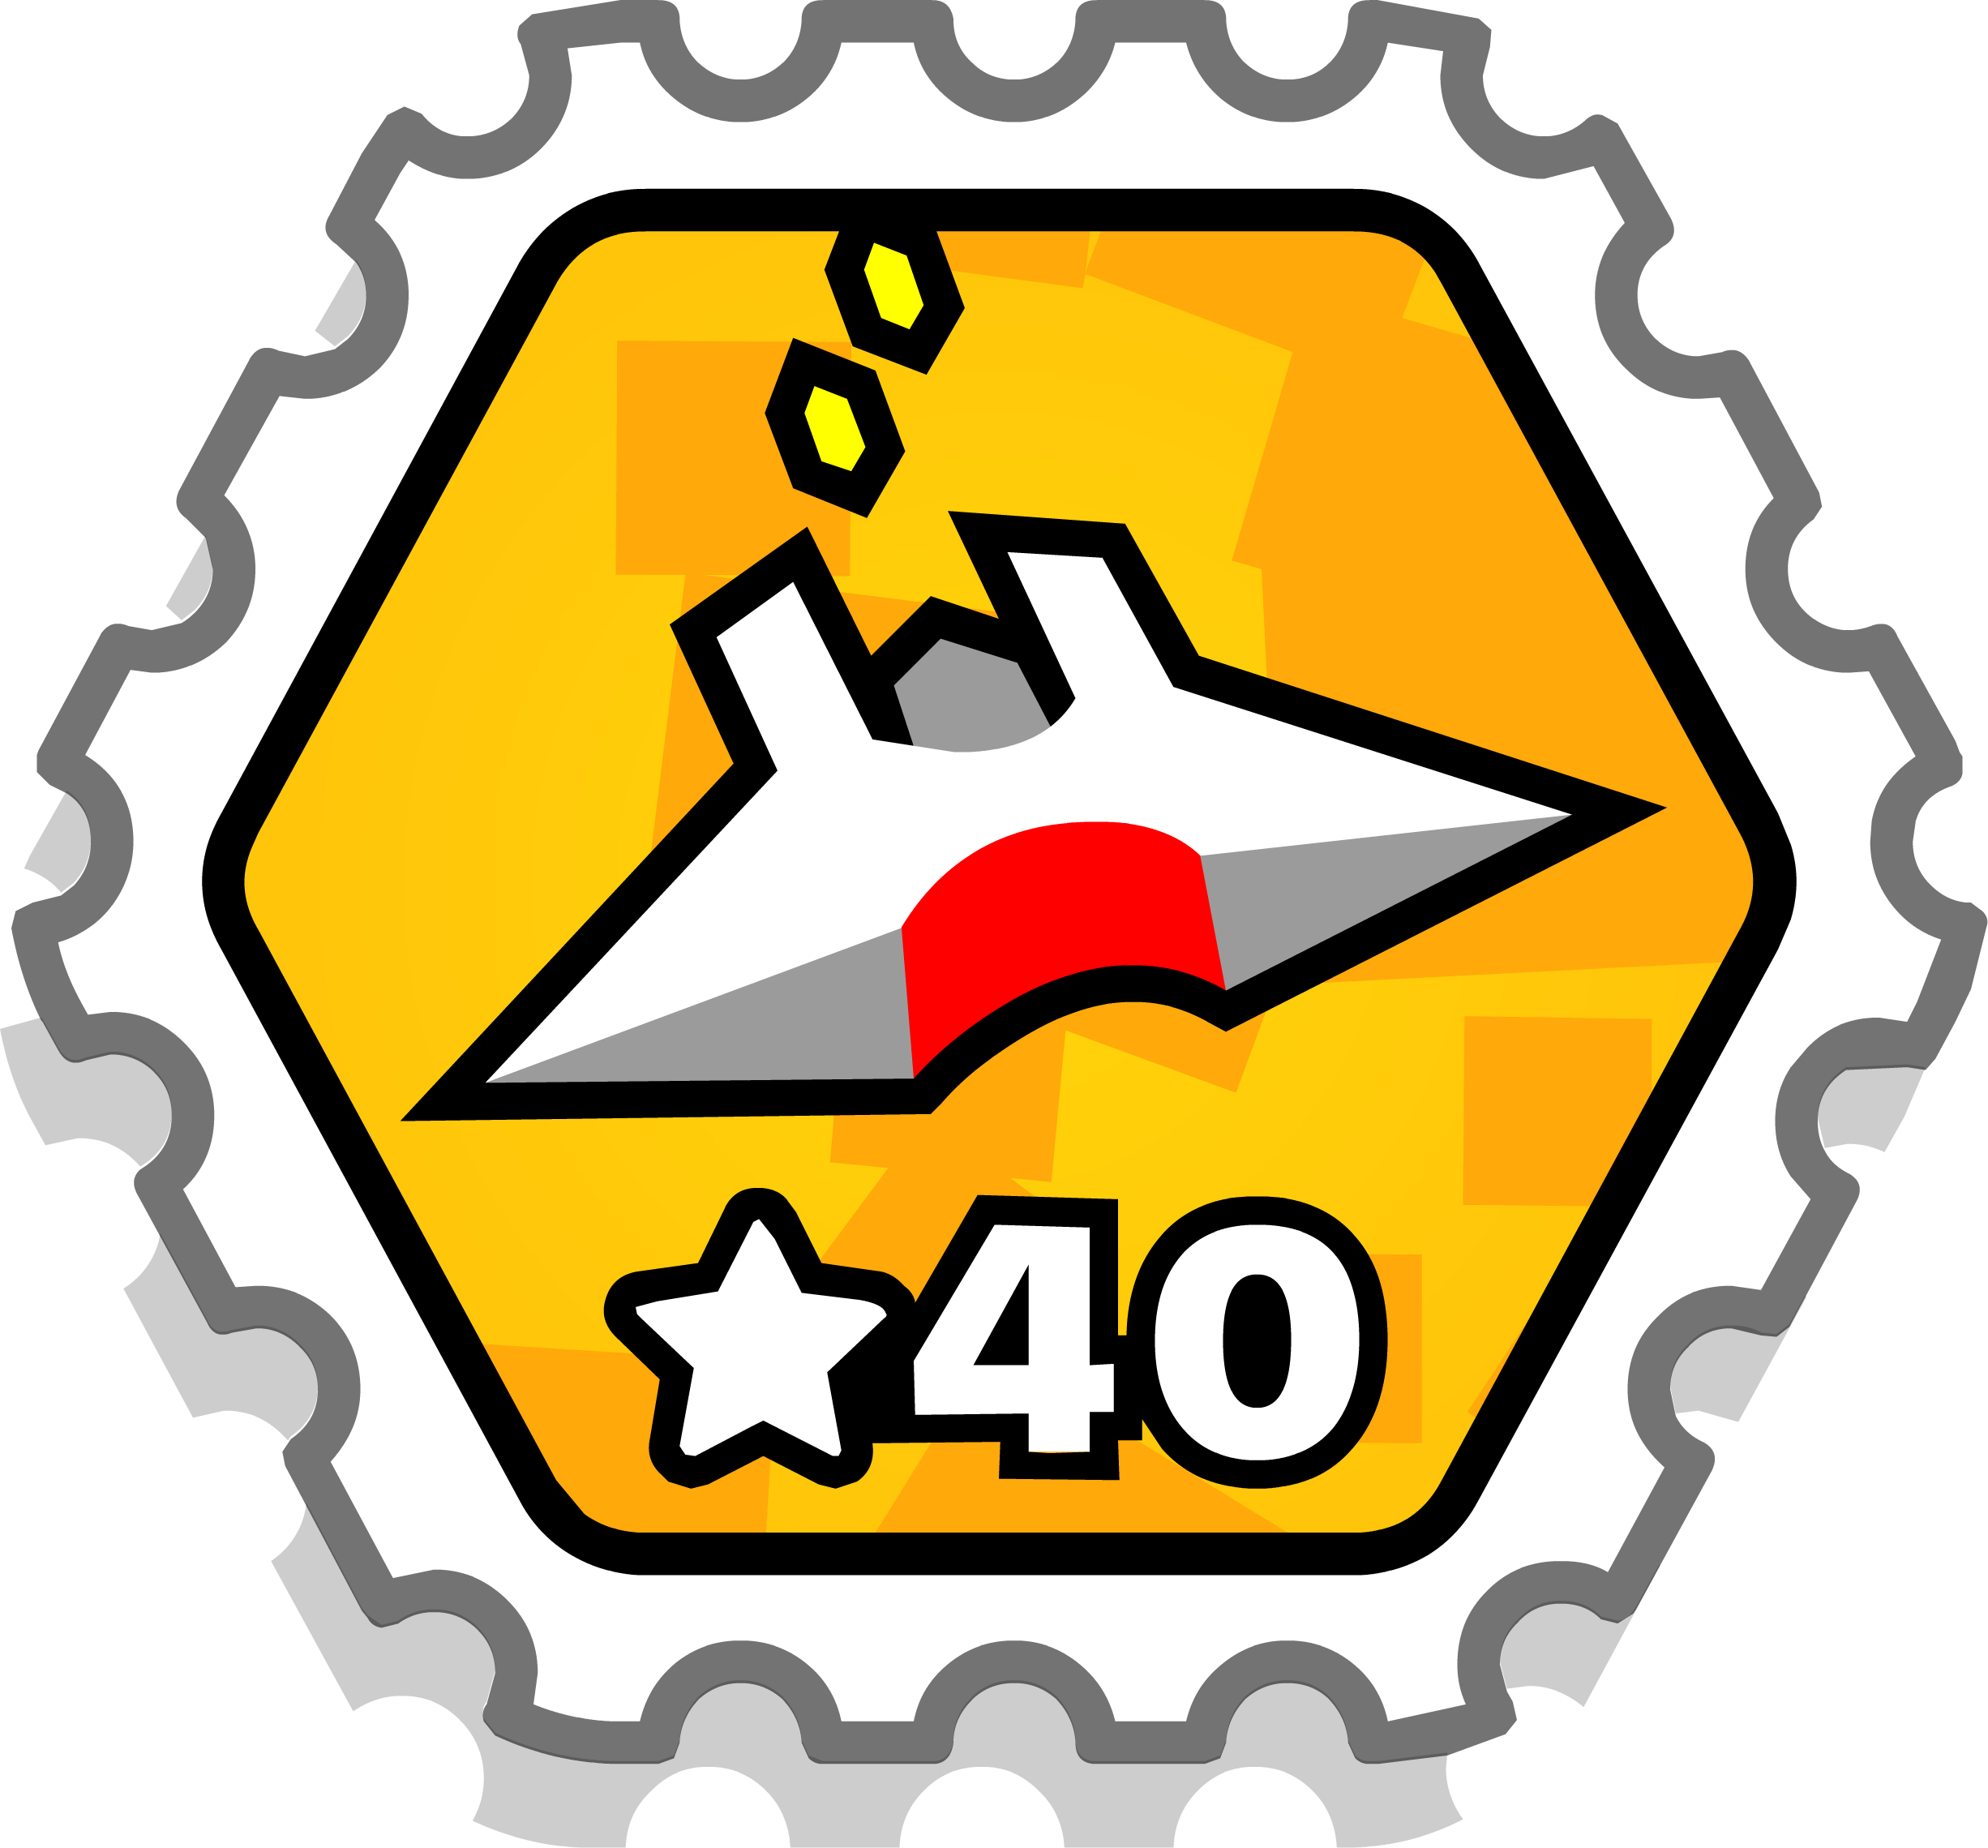 Astro40 stamp.png